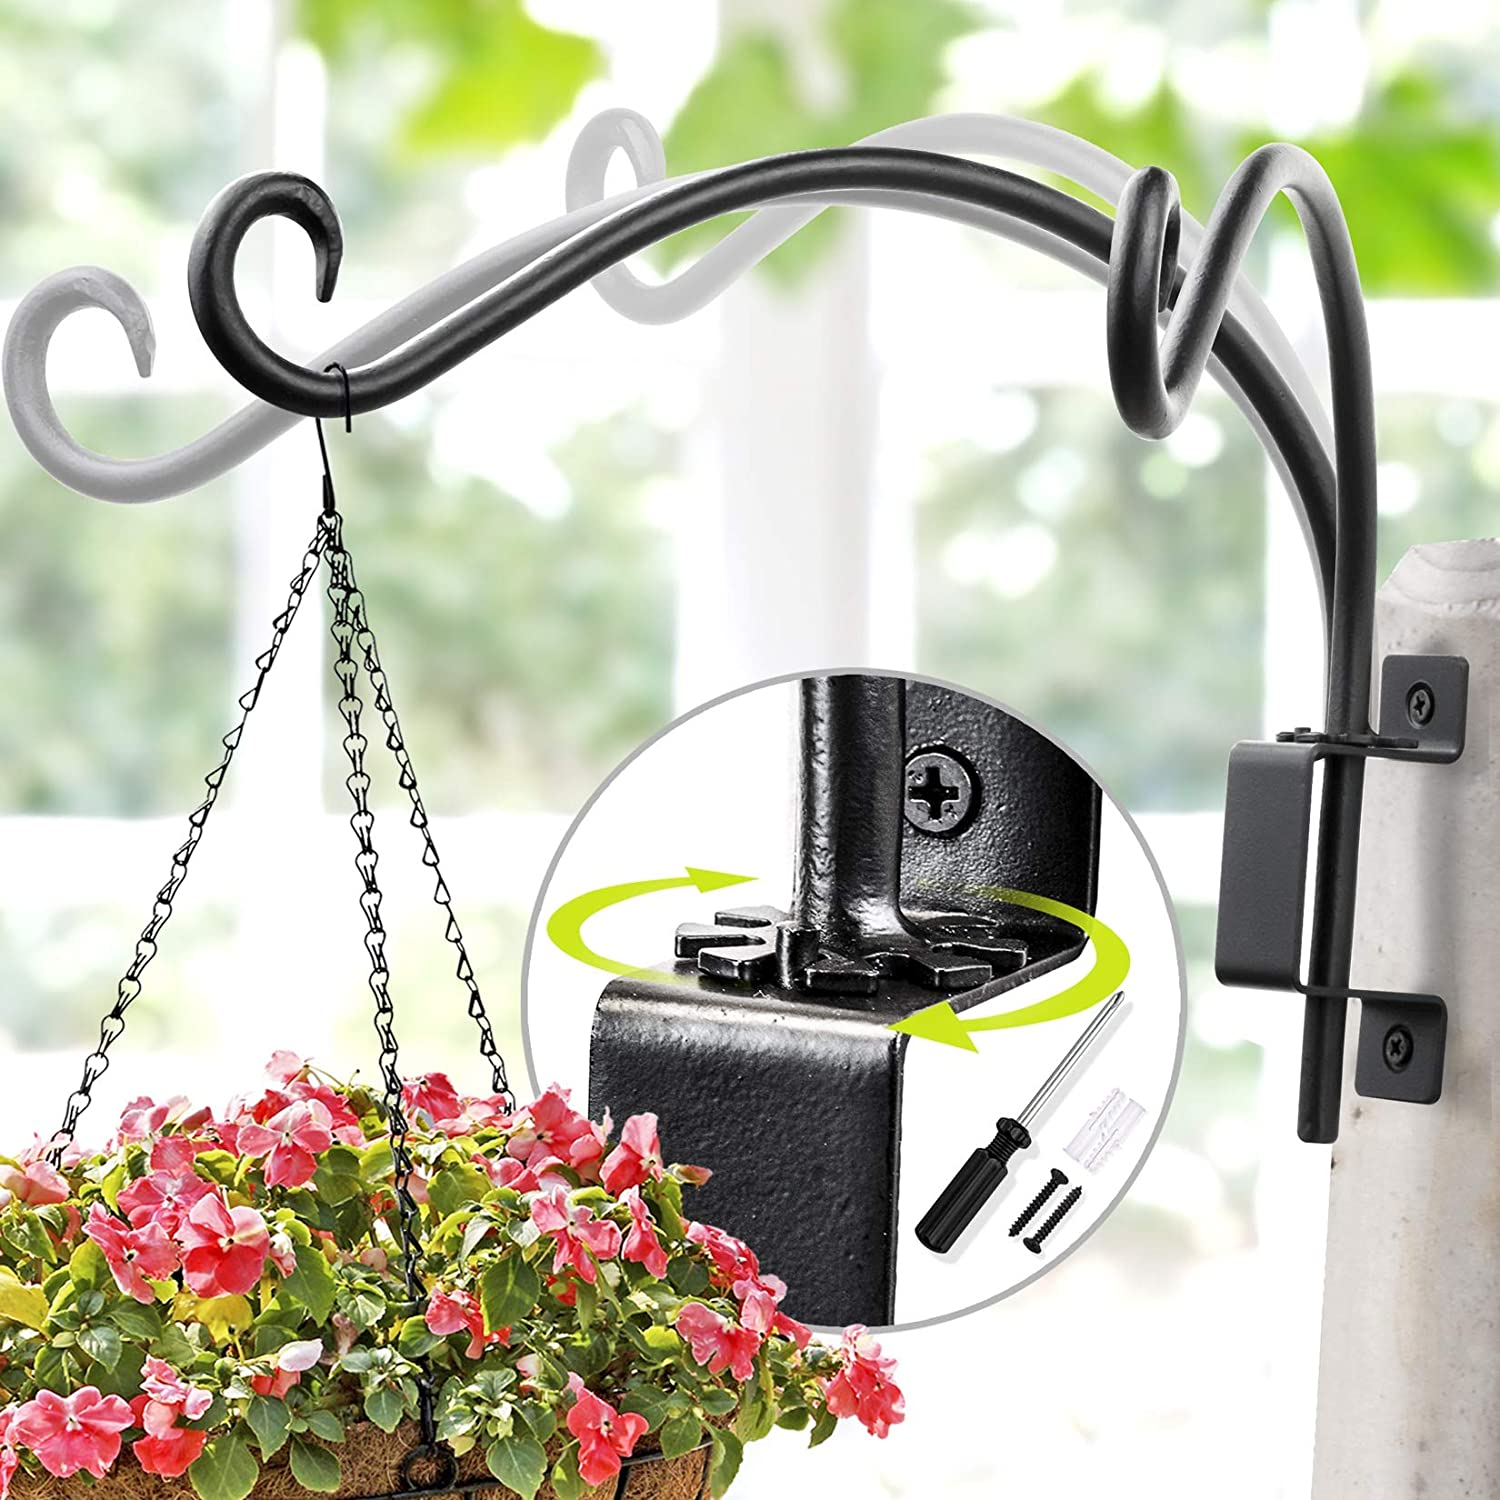 Swivel Plant Hanger Hand Forged Hanging Plant Bracket 12 Inch Black More Convenient Use And Designed With Rotary Fixation For Wall Plant Hooks Garden Outdoor